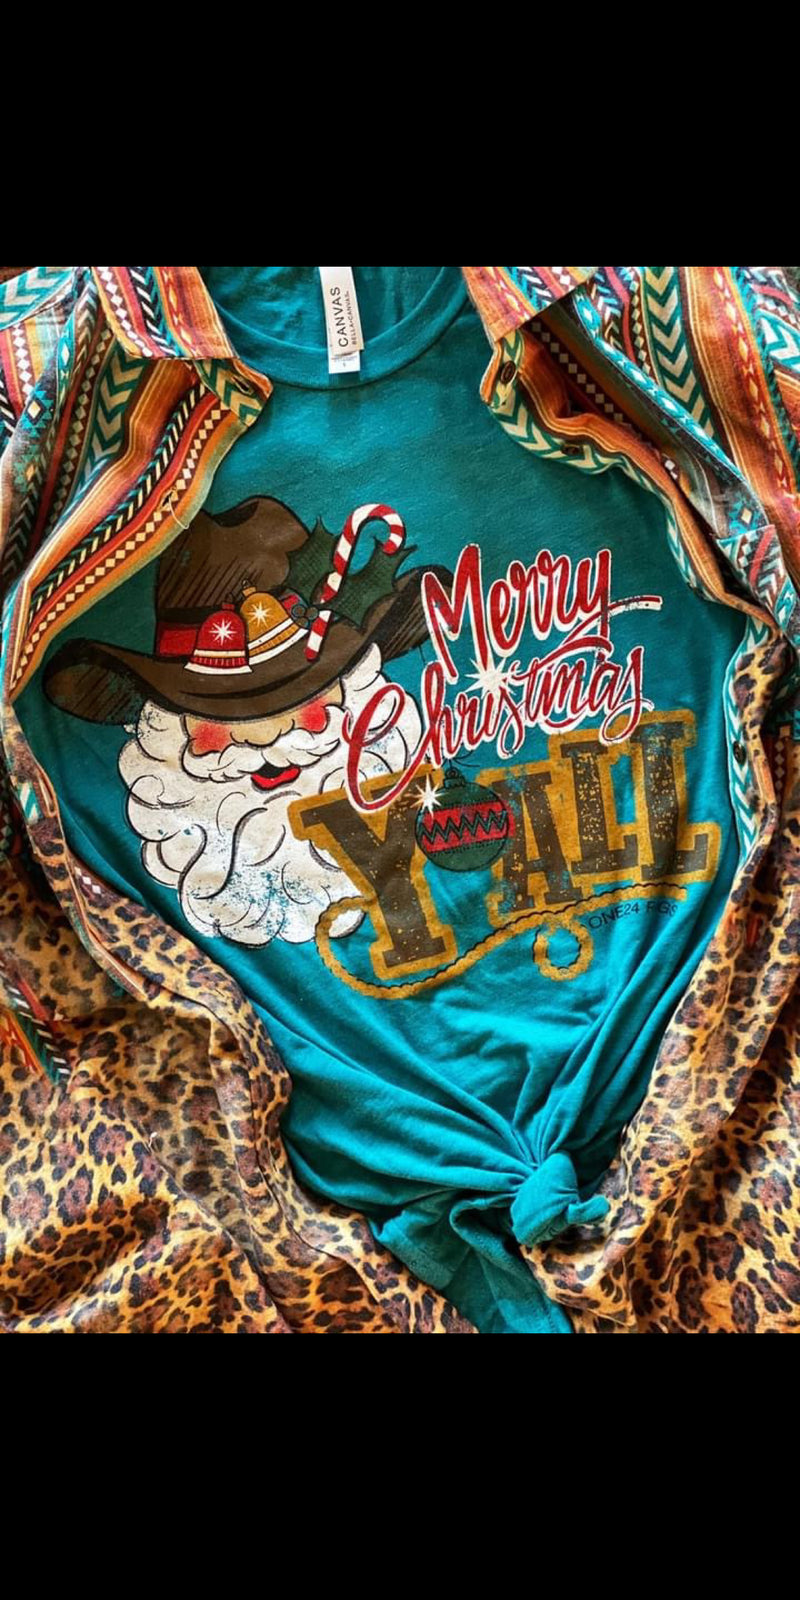 Cowboy Christmas Merry Christmas Top - Also in Plus Size